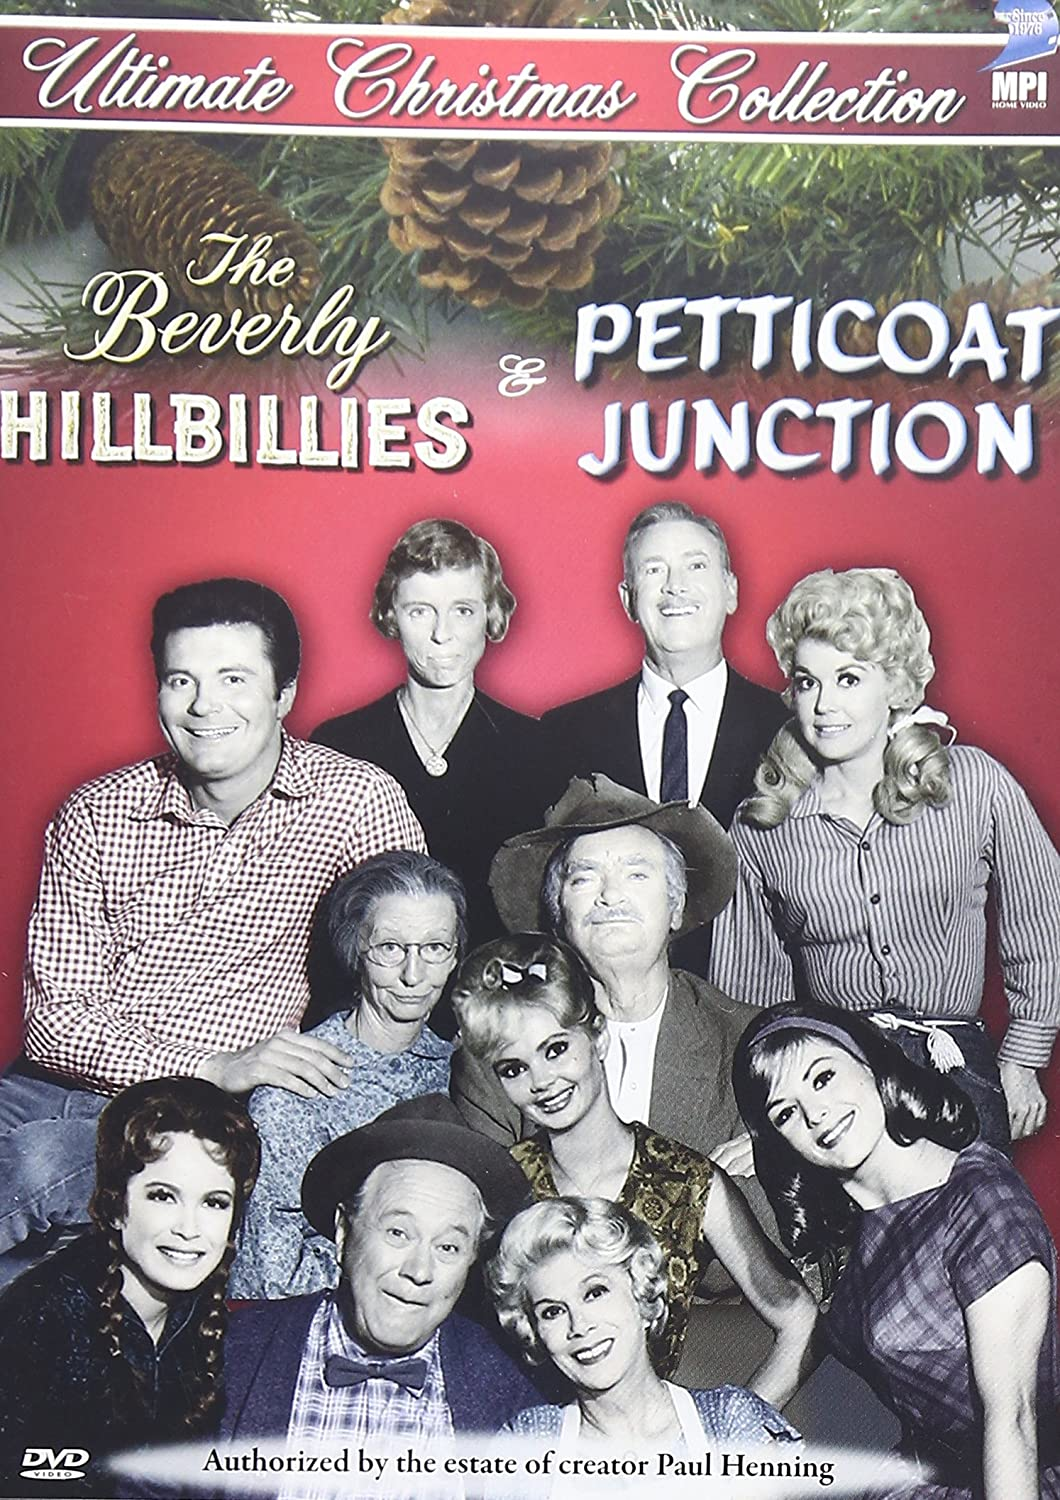 amazon com the beverly hillbillies petticoat junction christmas donna douglas irene ryan max baer jr raymond bailey nancy kulp harriet e macgibbon bea benaderet shug fisher danielle mardi linda henning